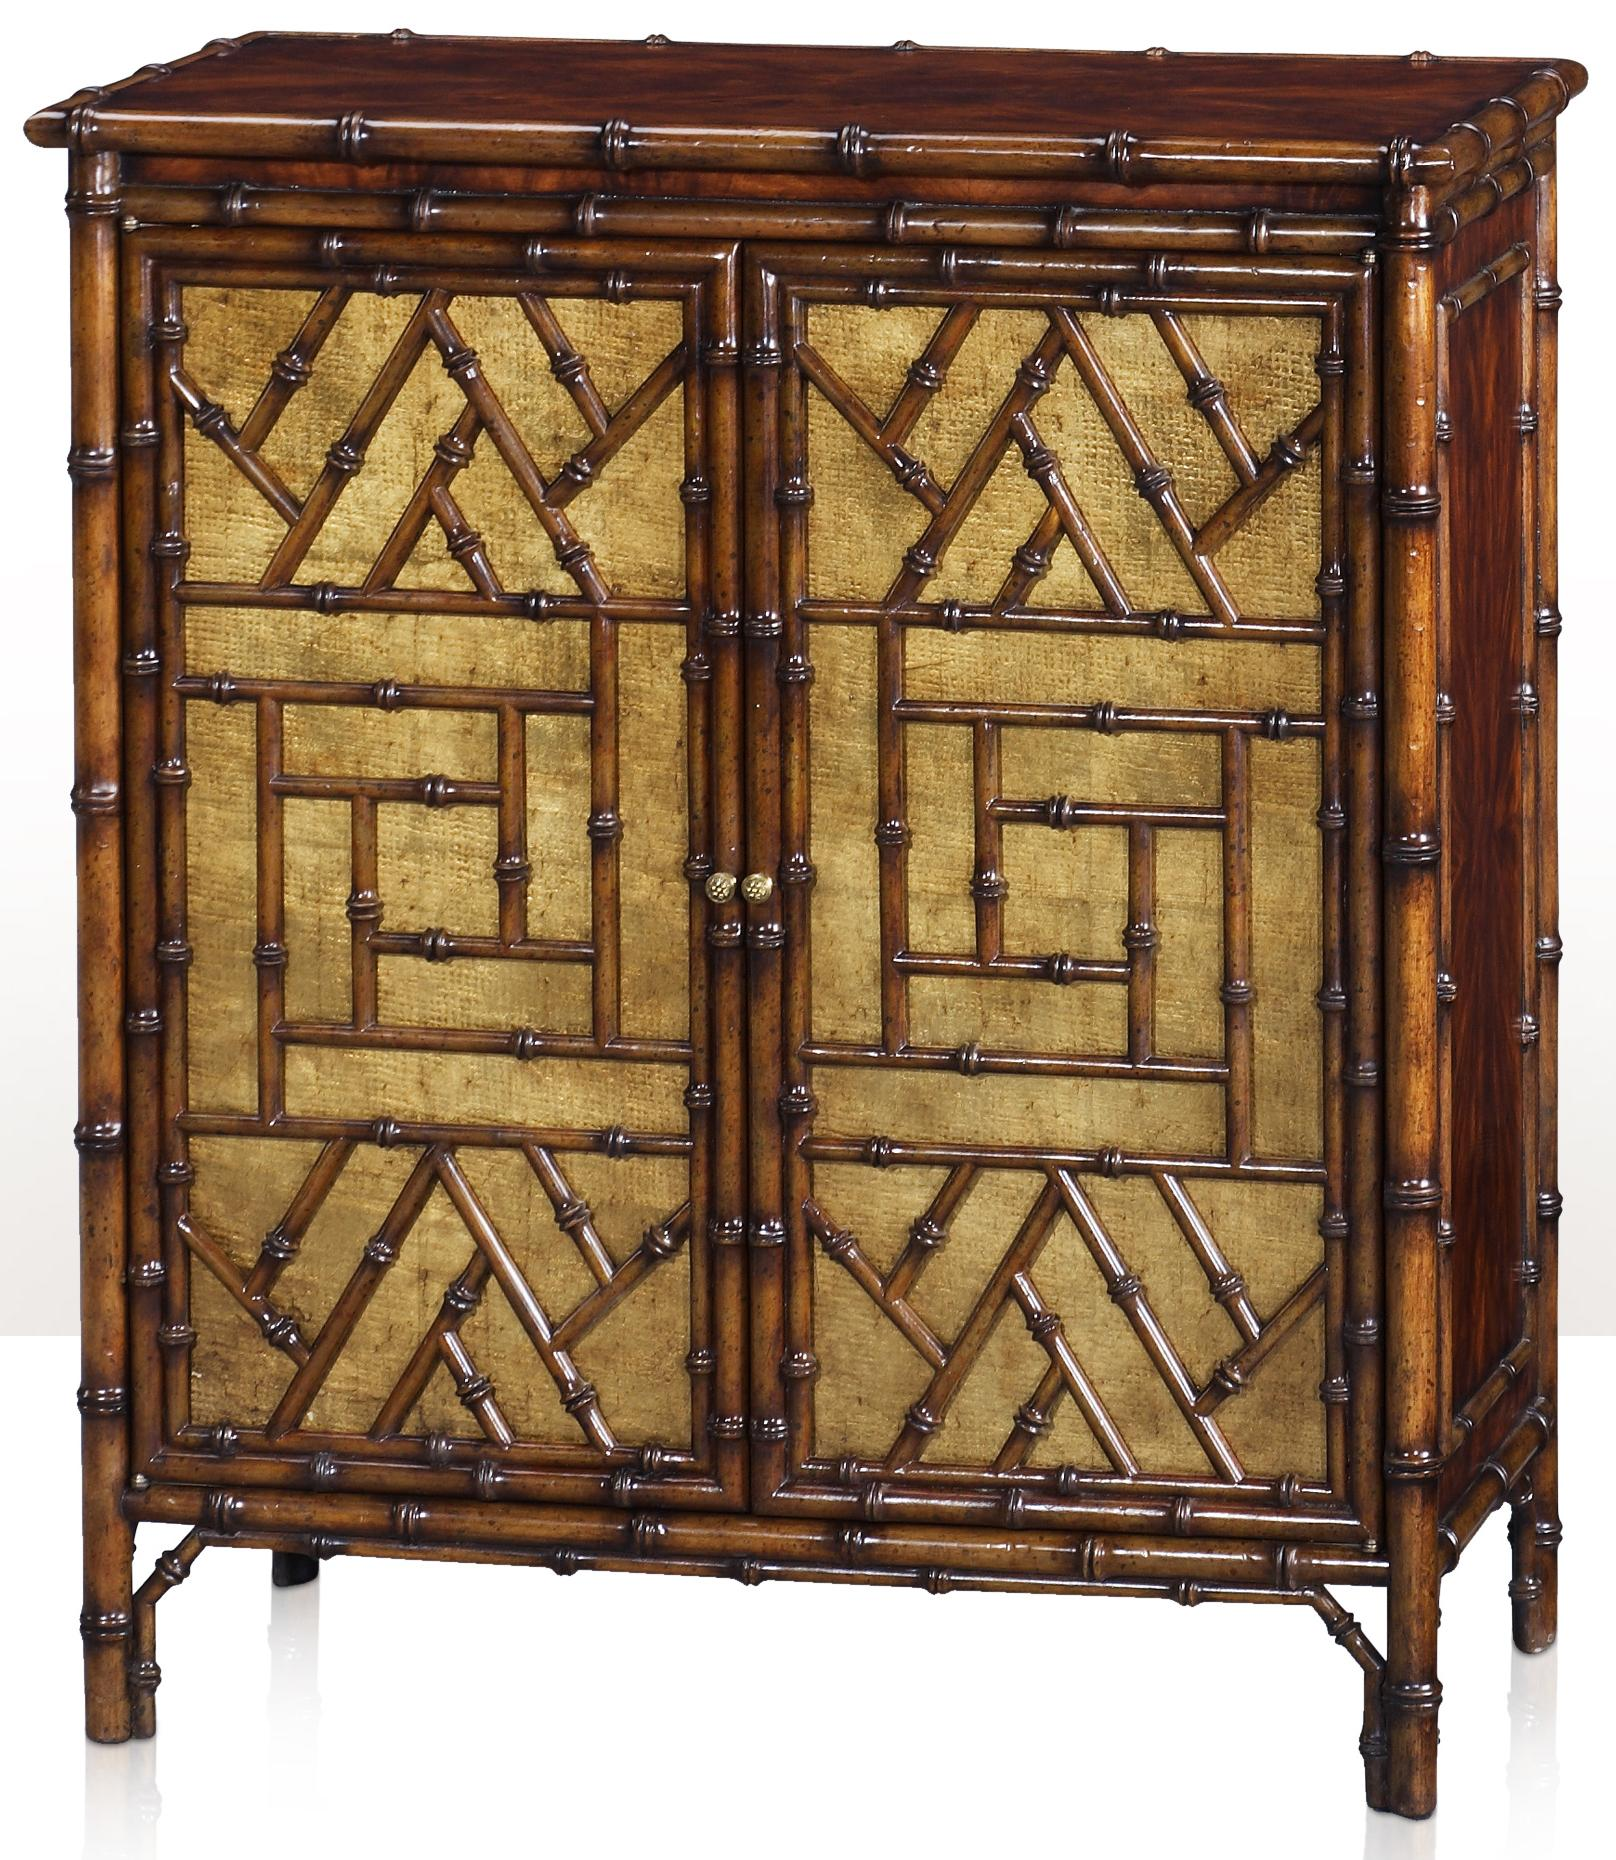 The Argent Cabinet